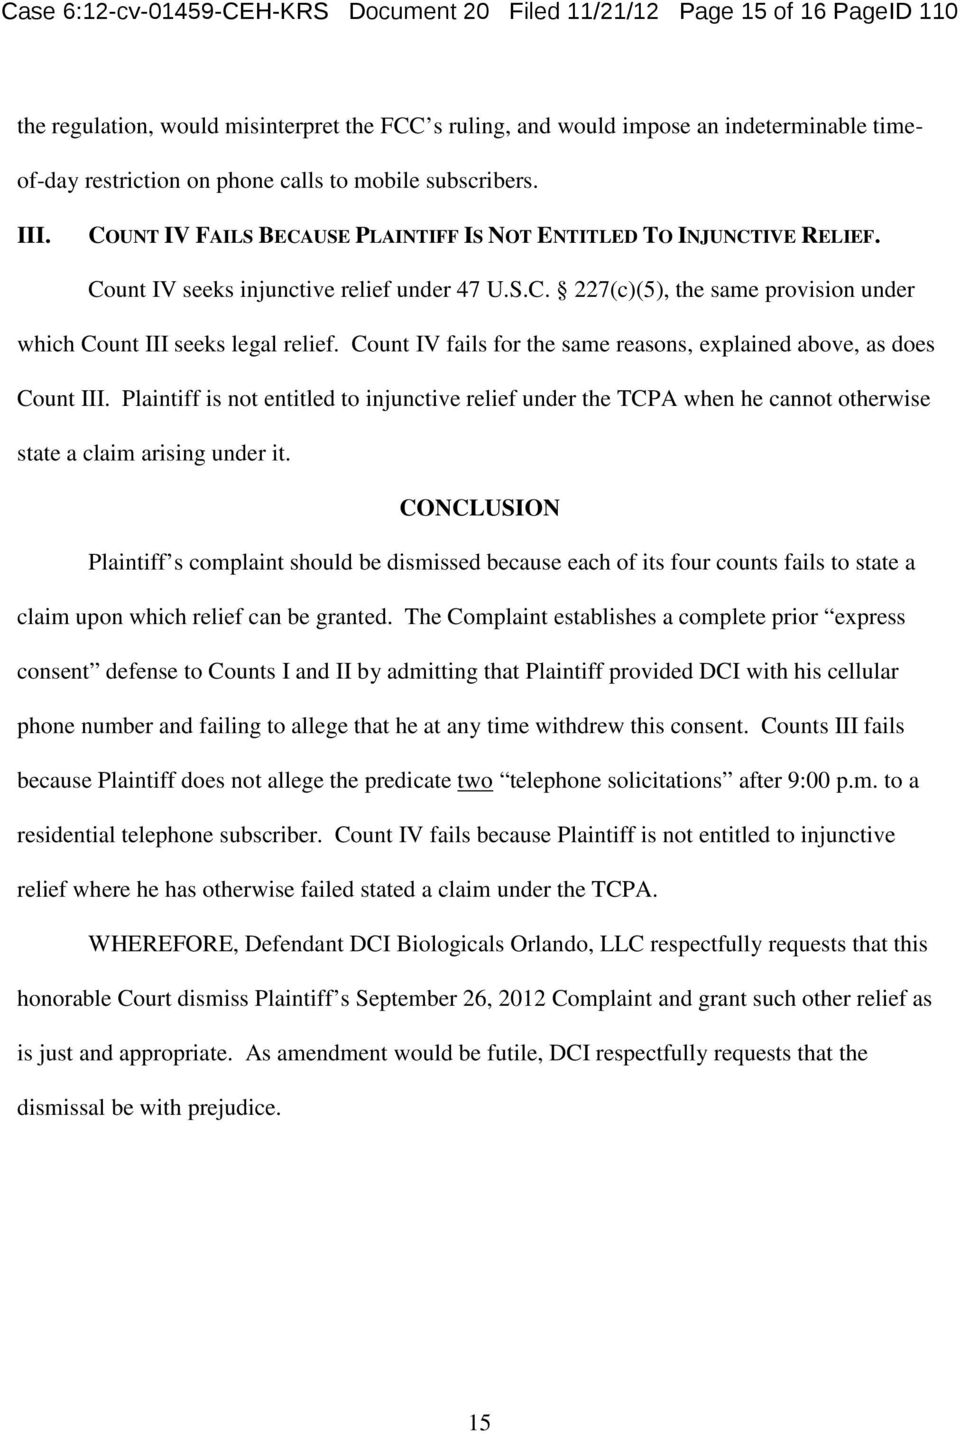 Count IV fails for the same reasons, explained above, as does Count III. Plaintiff is not entitled to injunctive relief under the TCPA when he cannot otherwise state a claim arising under it.